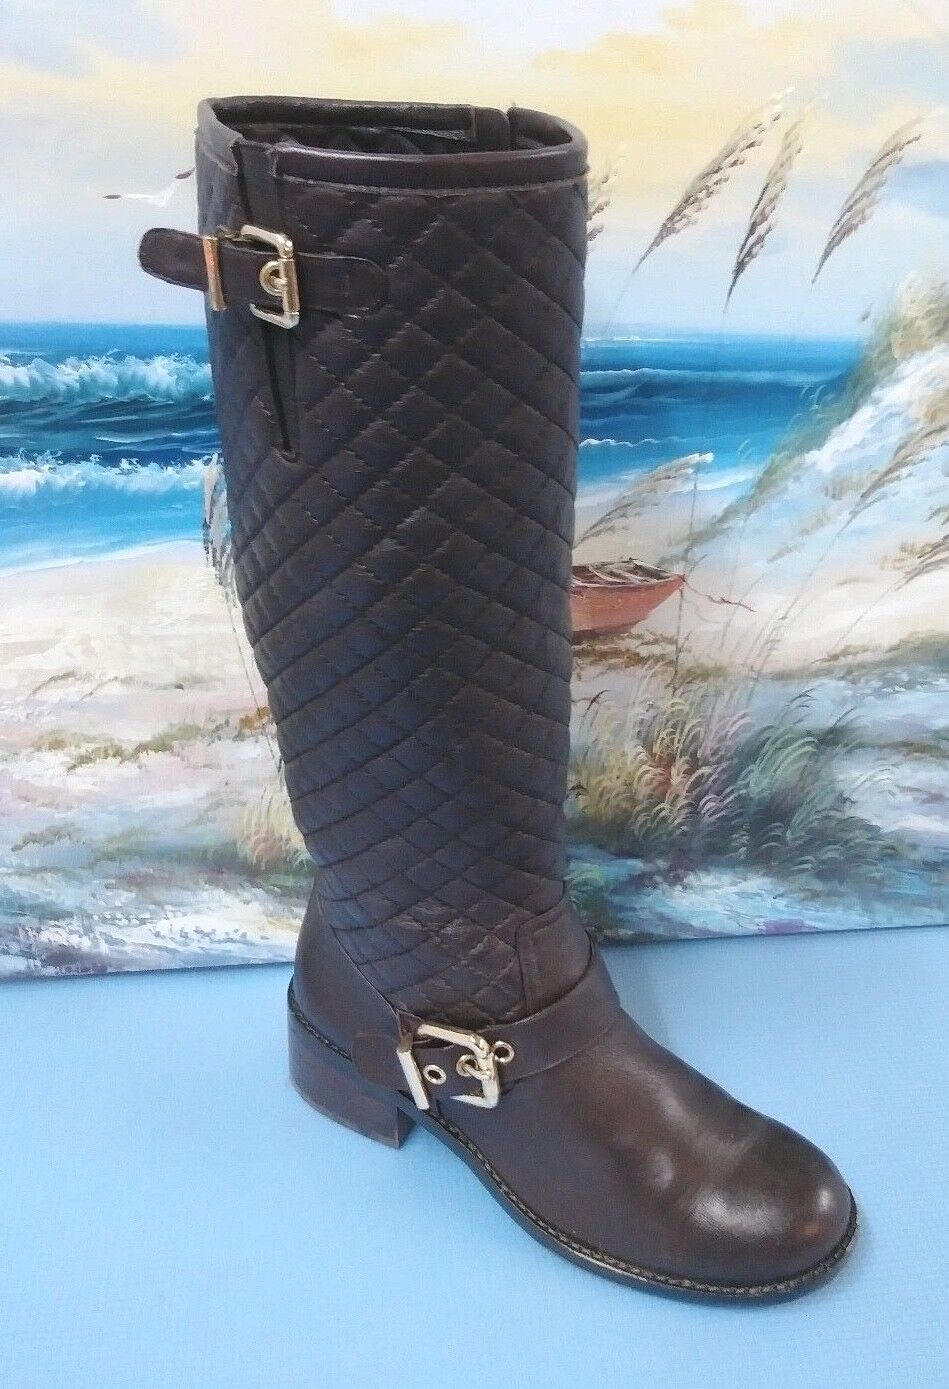 Vince Camuto Tall Dark Brown Leather Side Zip Harness Boots Women's Size 7 M